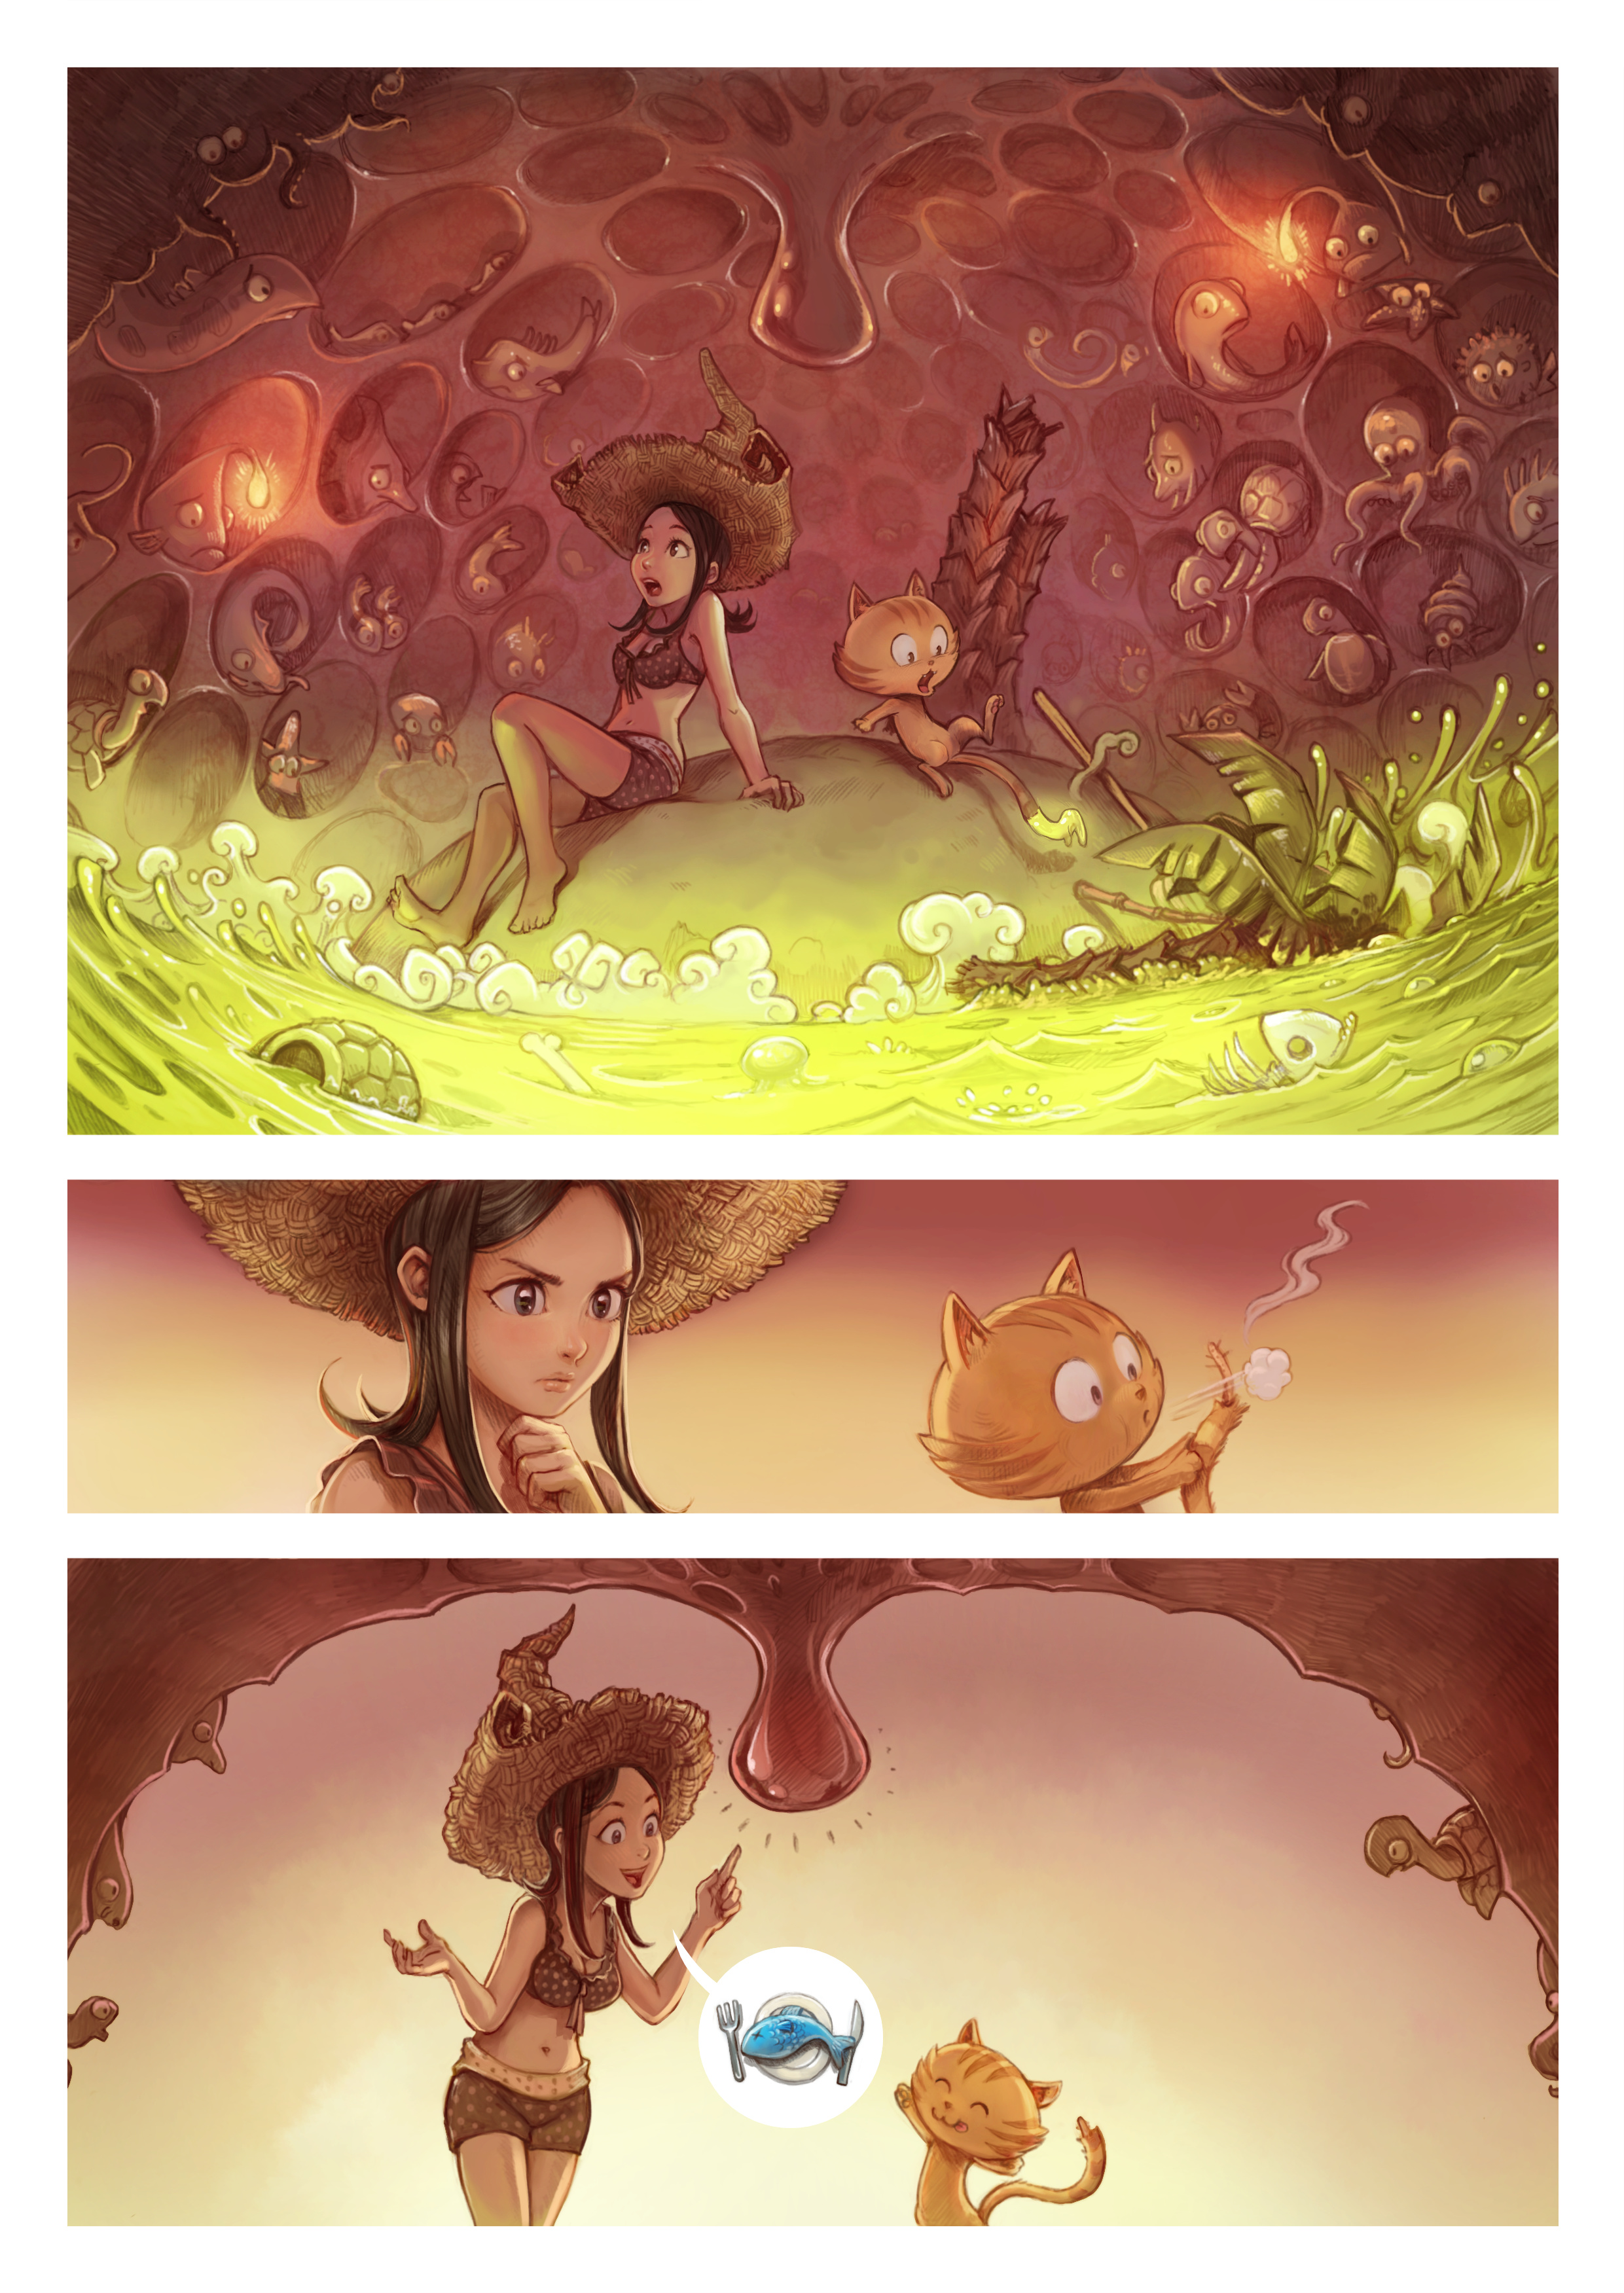 A webcomic page of Pepper&Carrot, Tập 10 [vi], trang 3